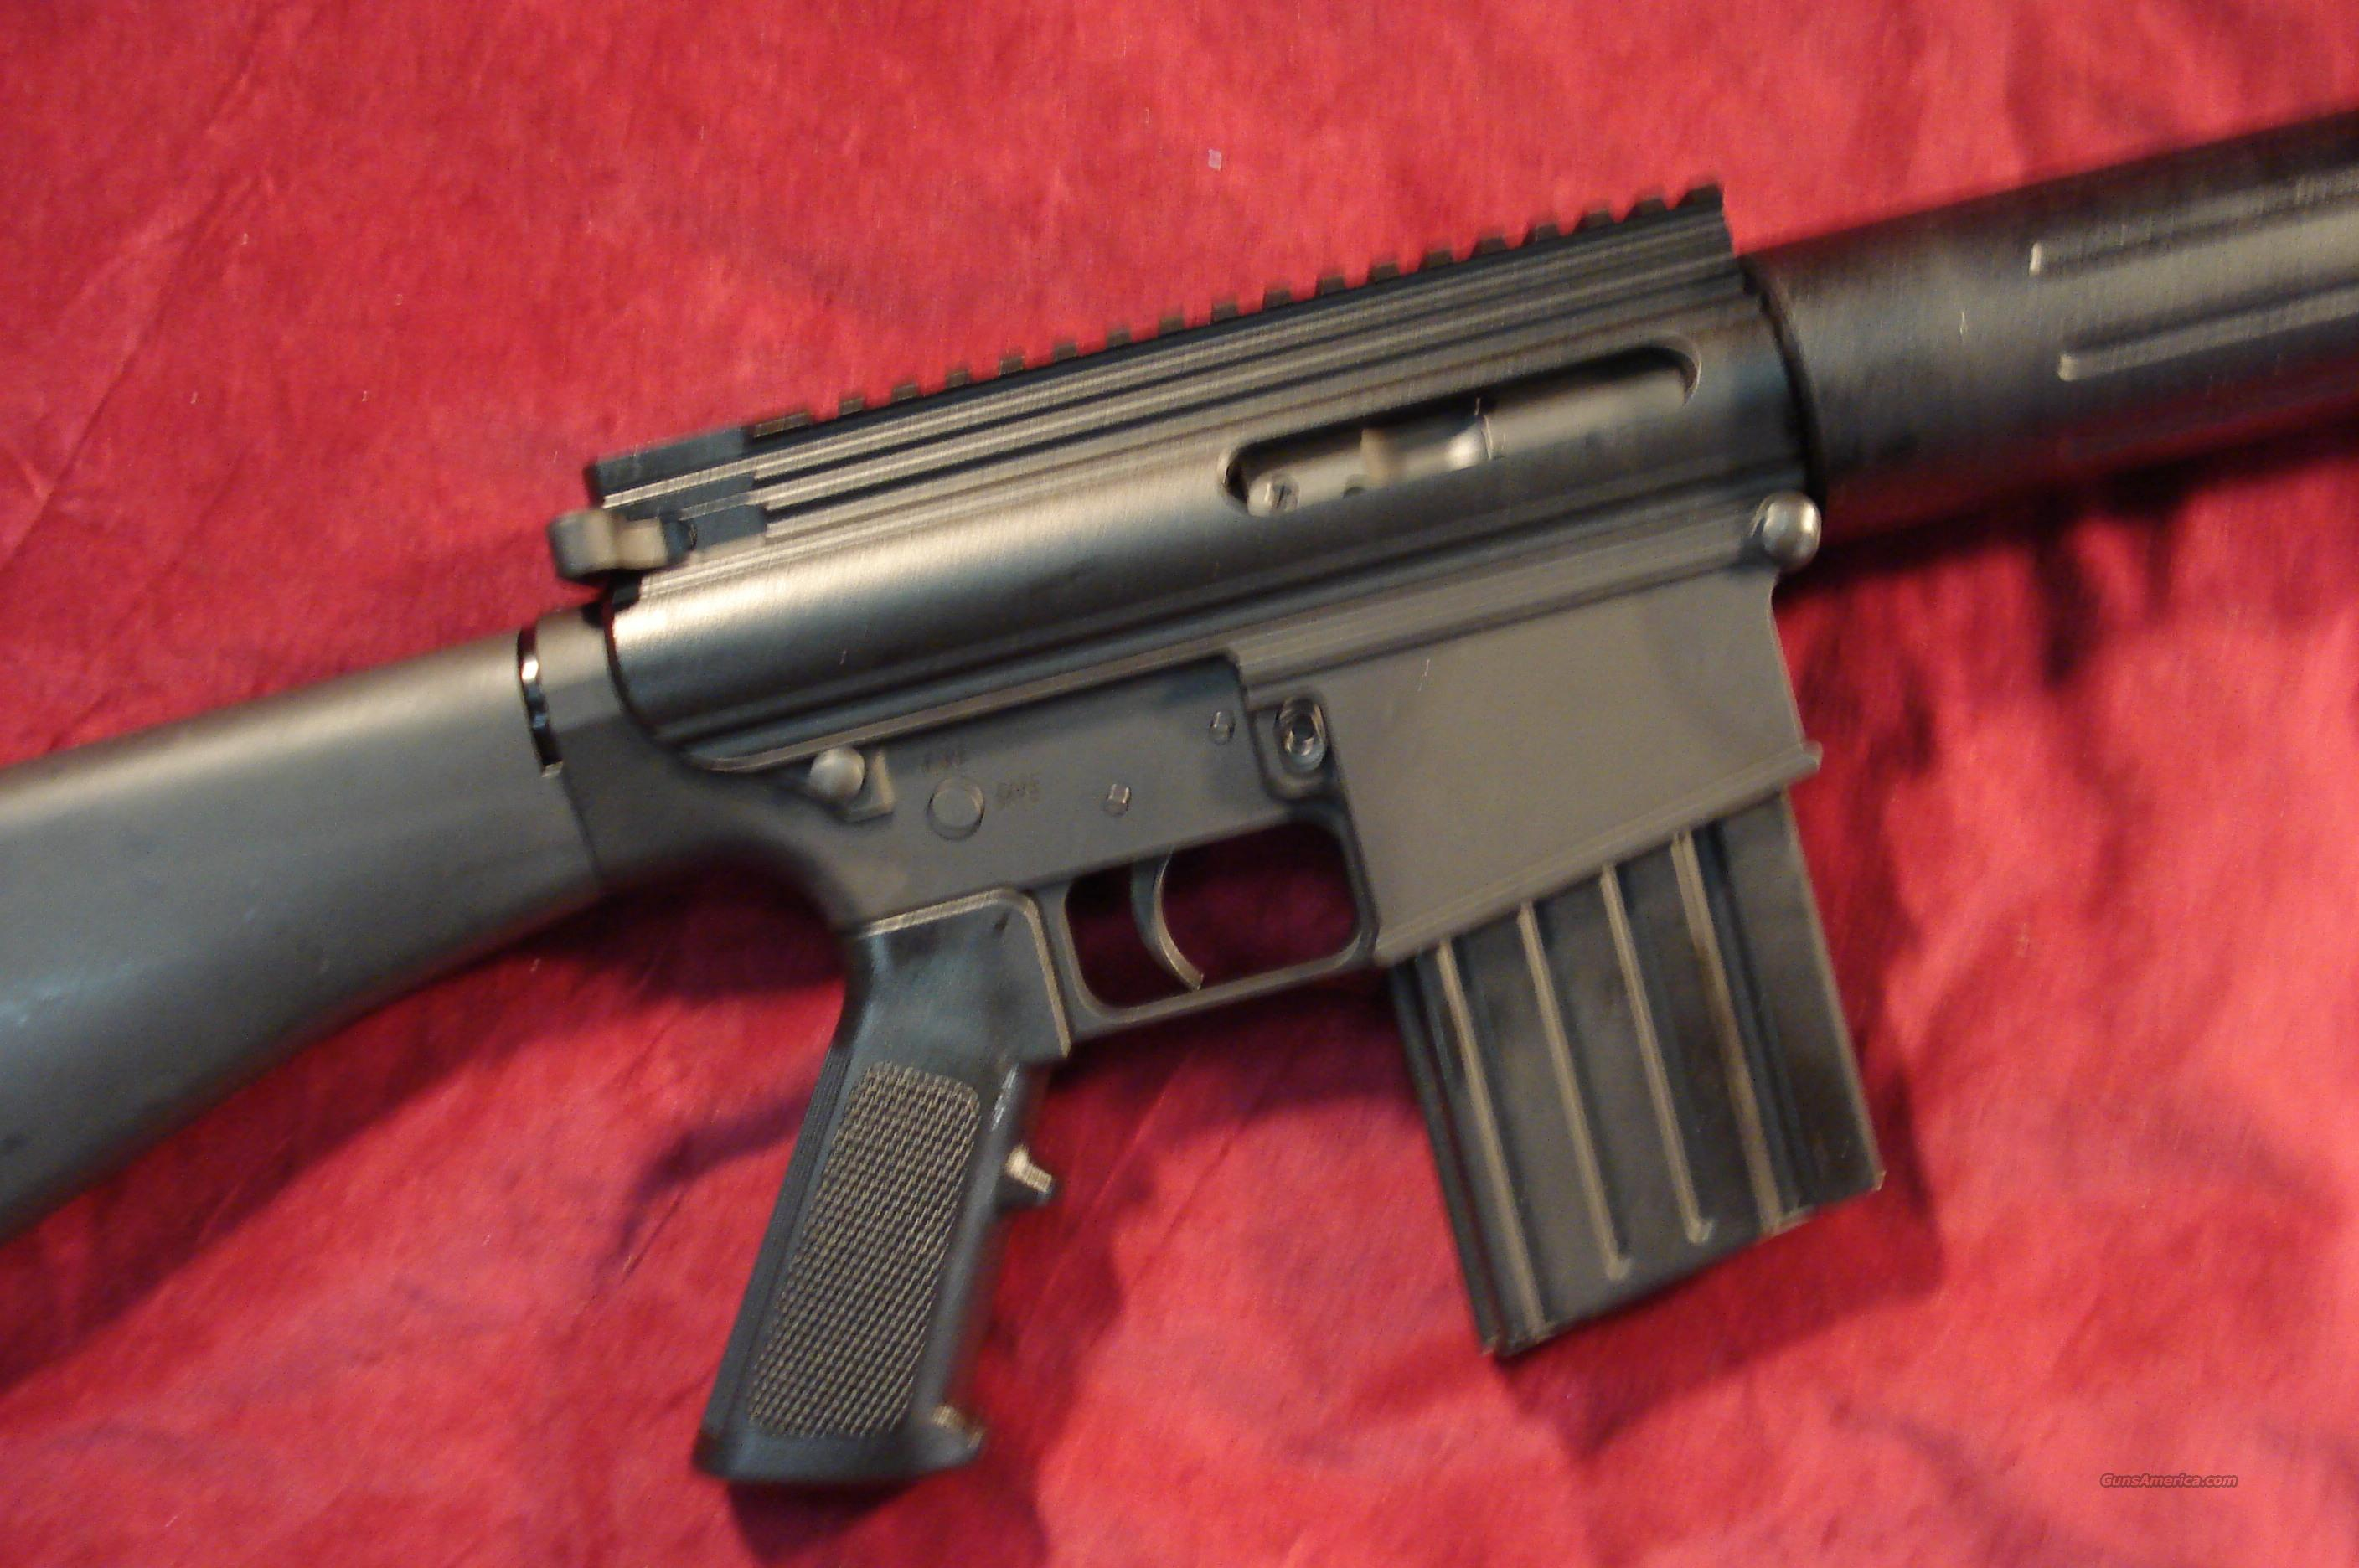 Rifle 308 Auto Bull Panther 7 Barrel Win 62 Lr 24 308 Stainless Nato Semi Dpms